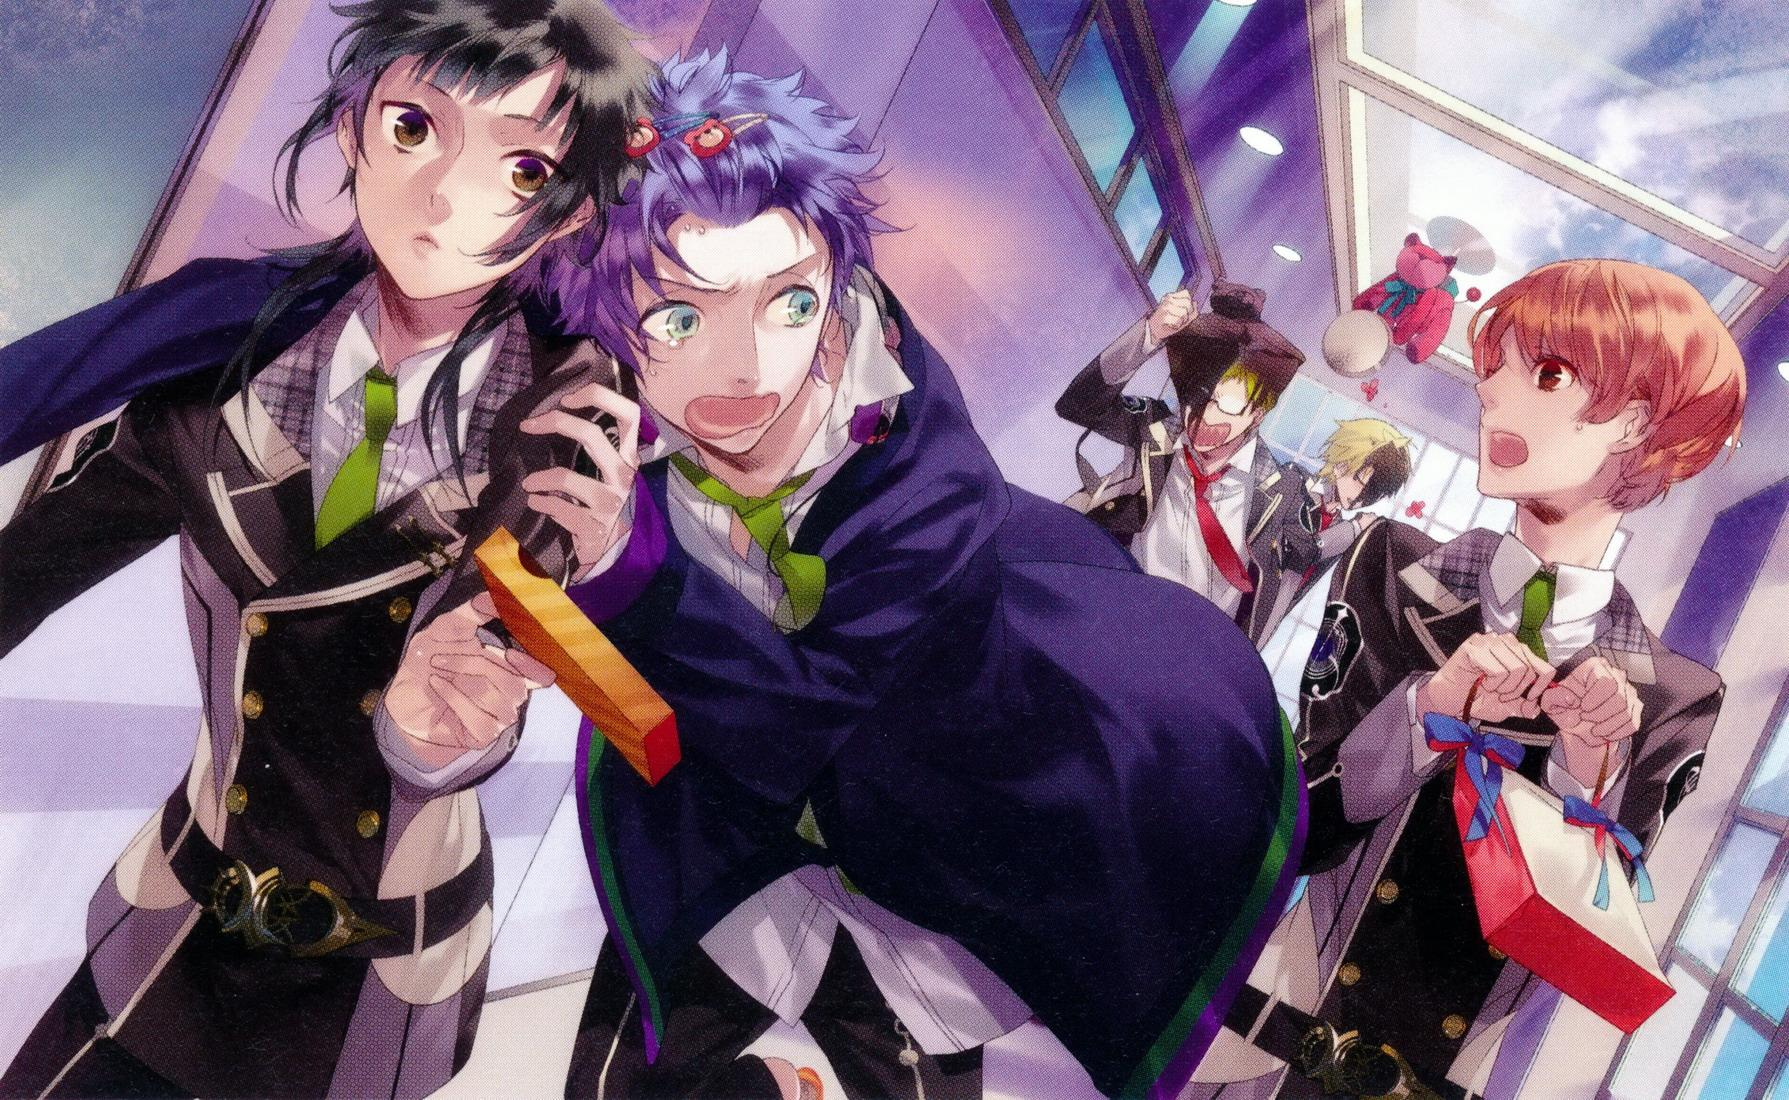 anime series like brothers conflict Starry Sky